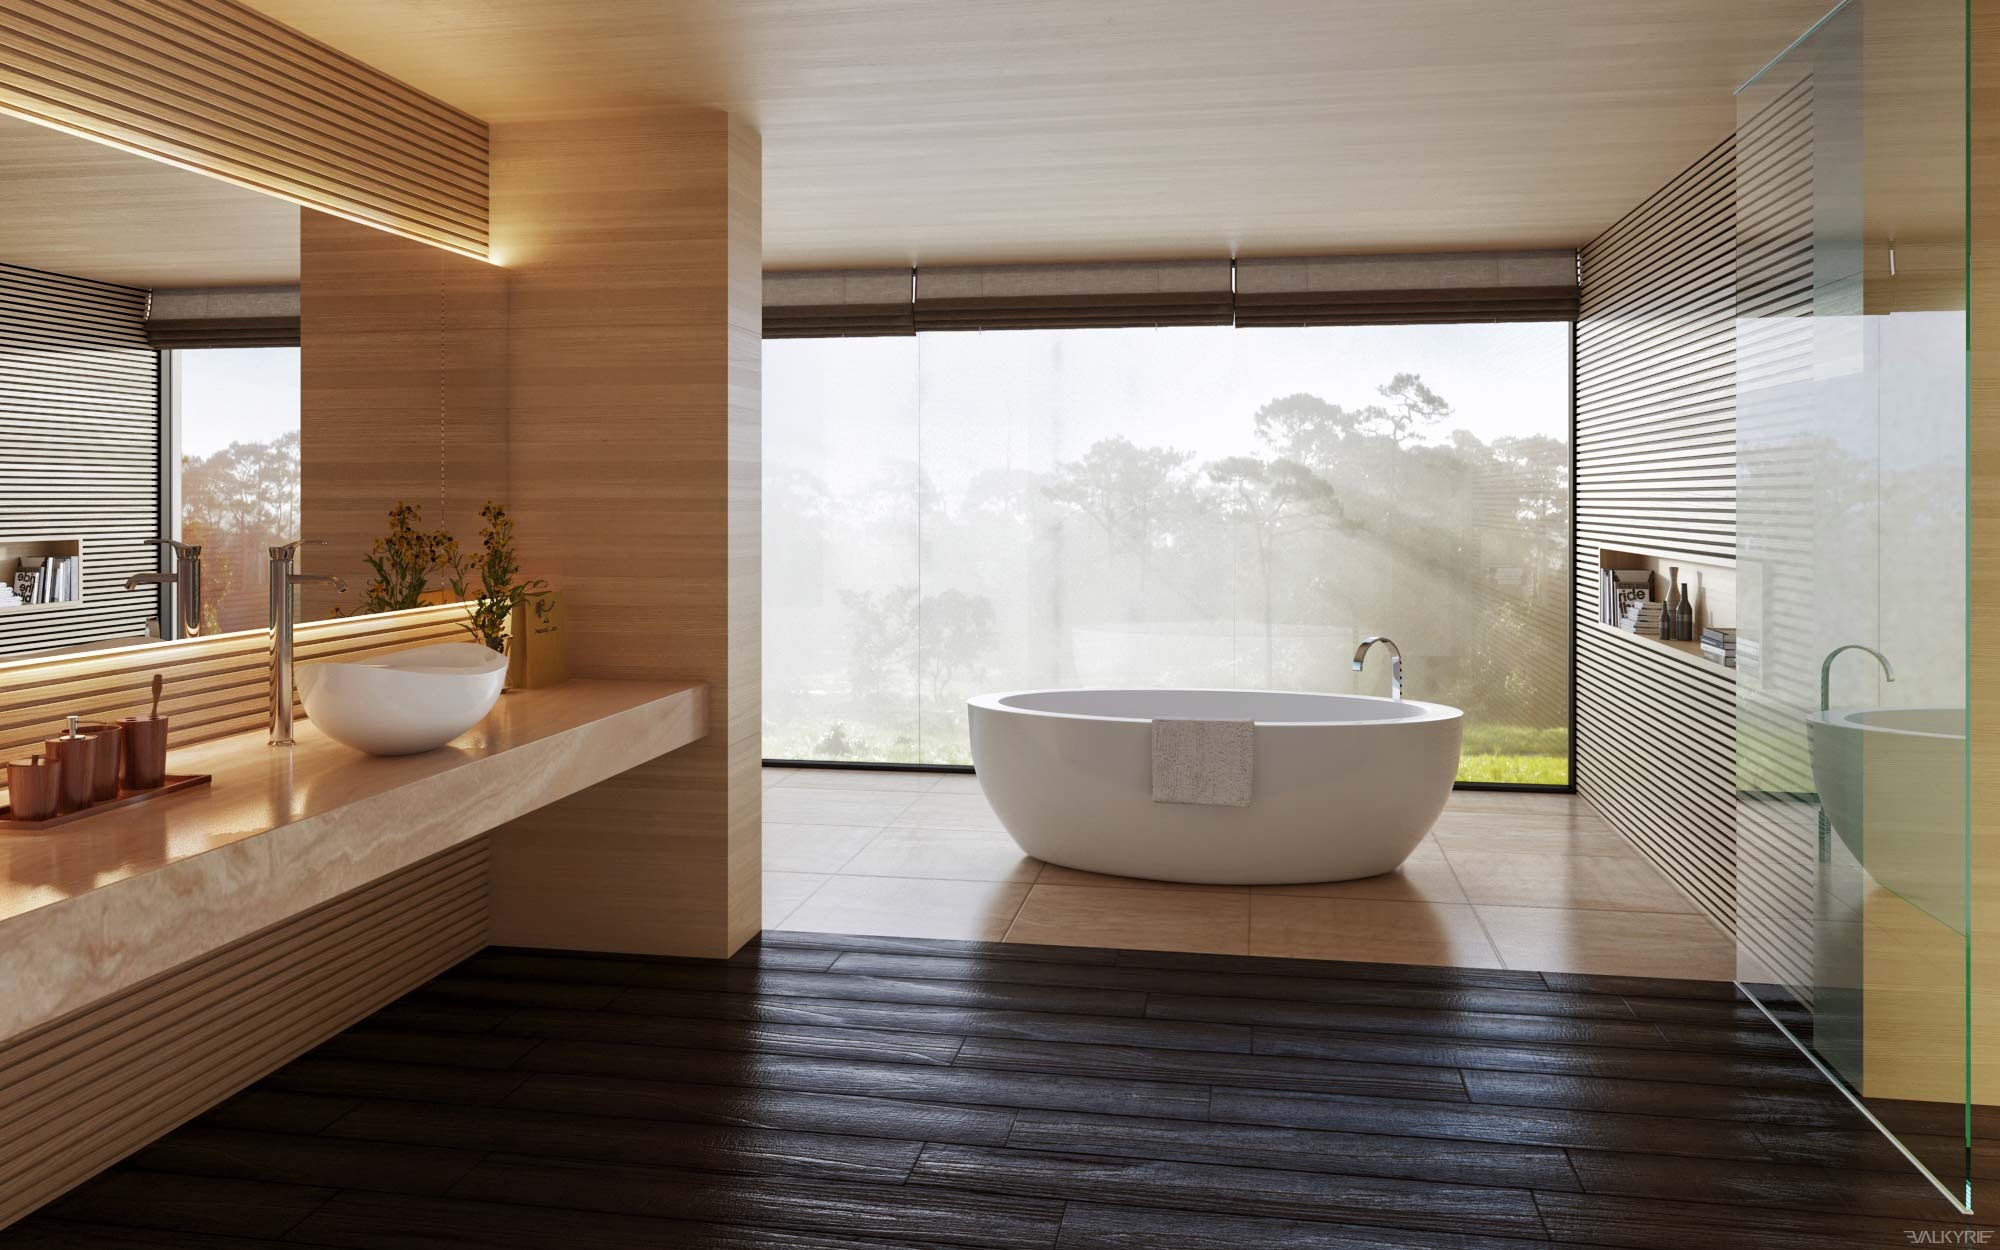 Ultra luxury bathroom inspiration - Pictures of bathroom designs ...